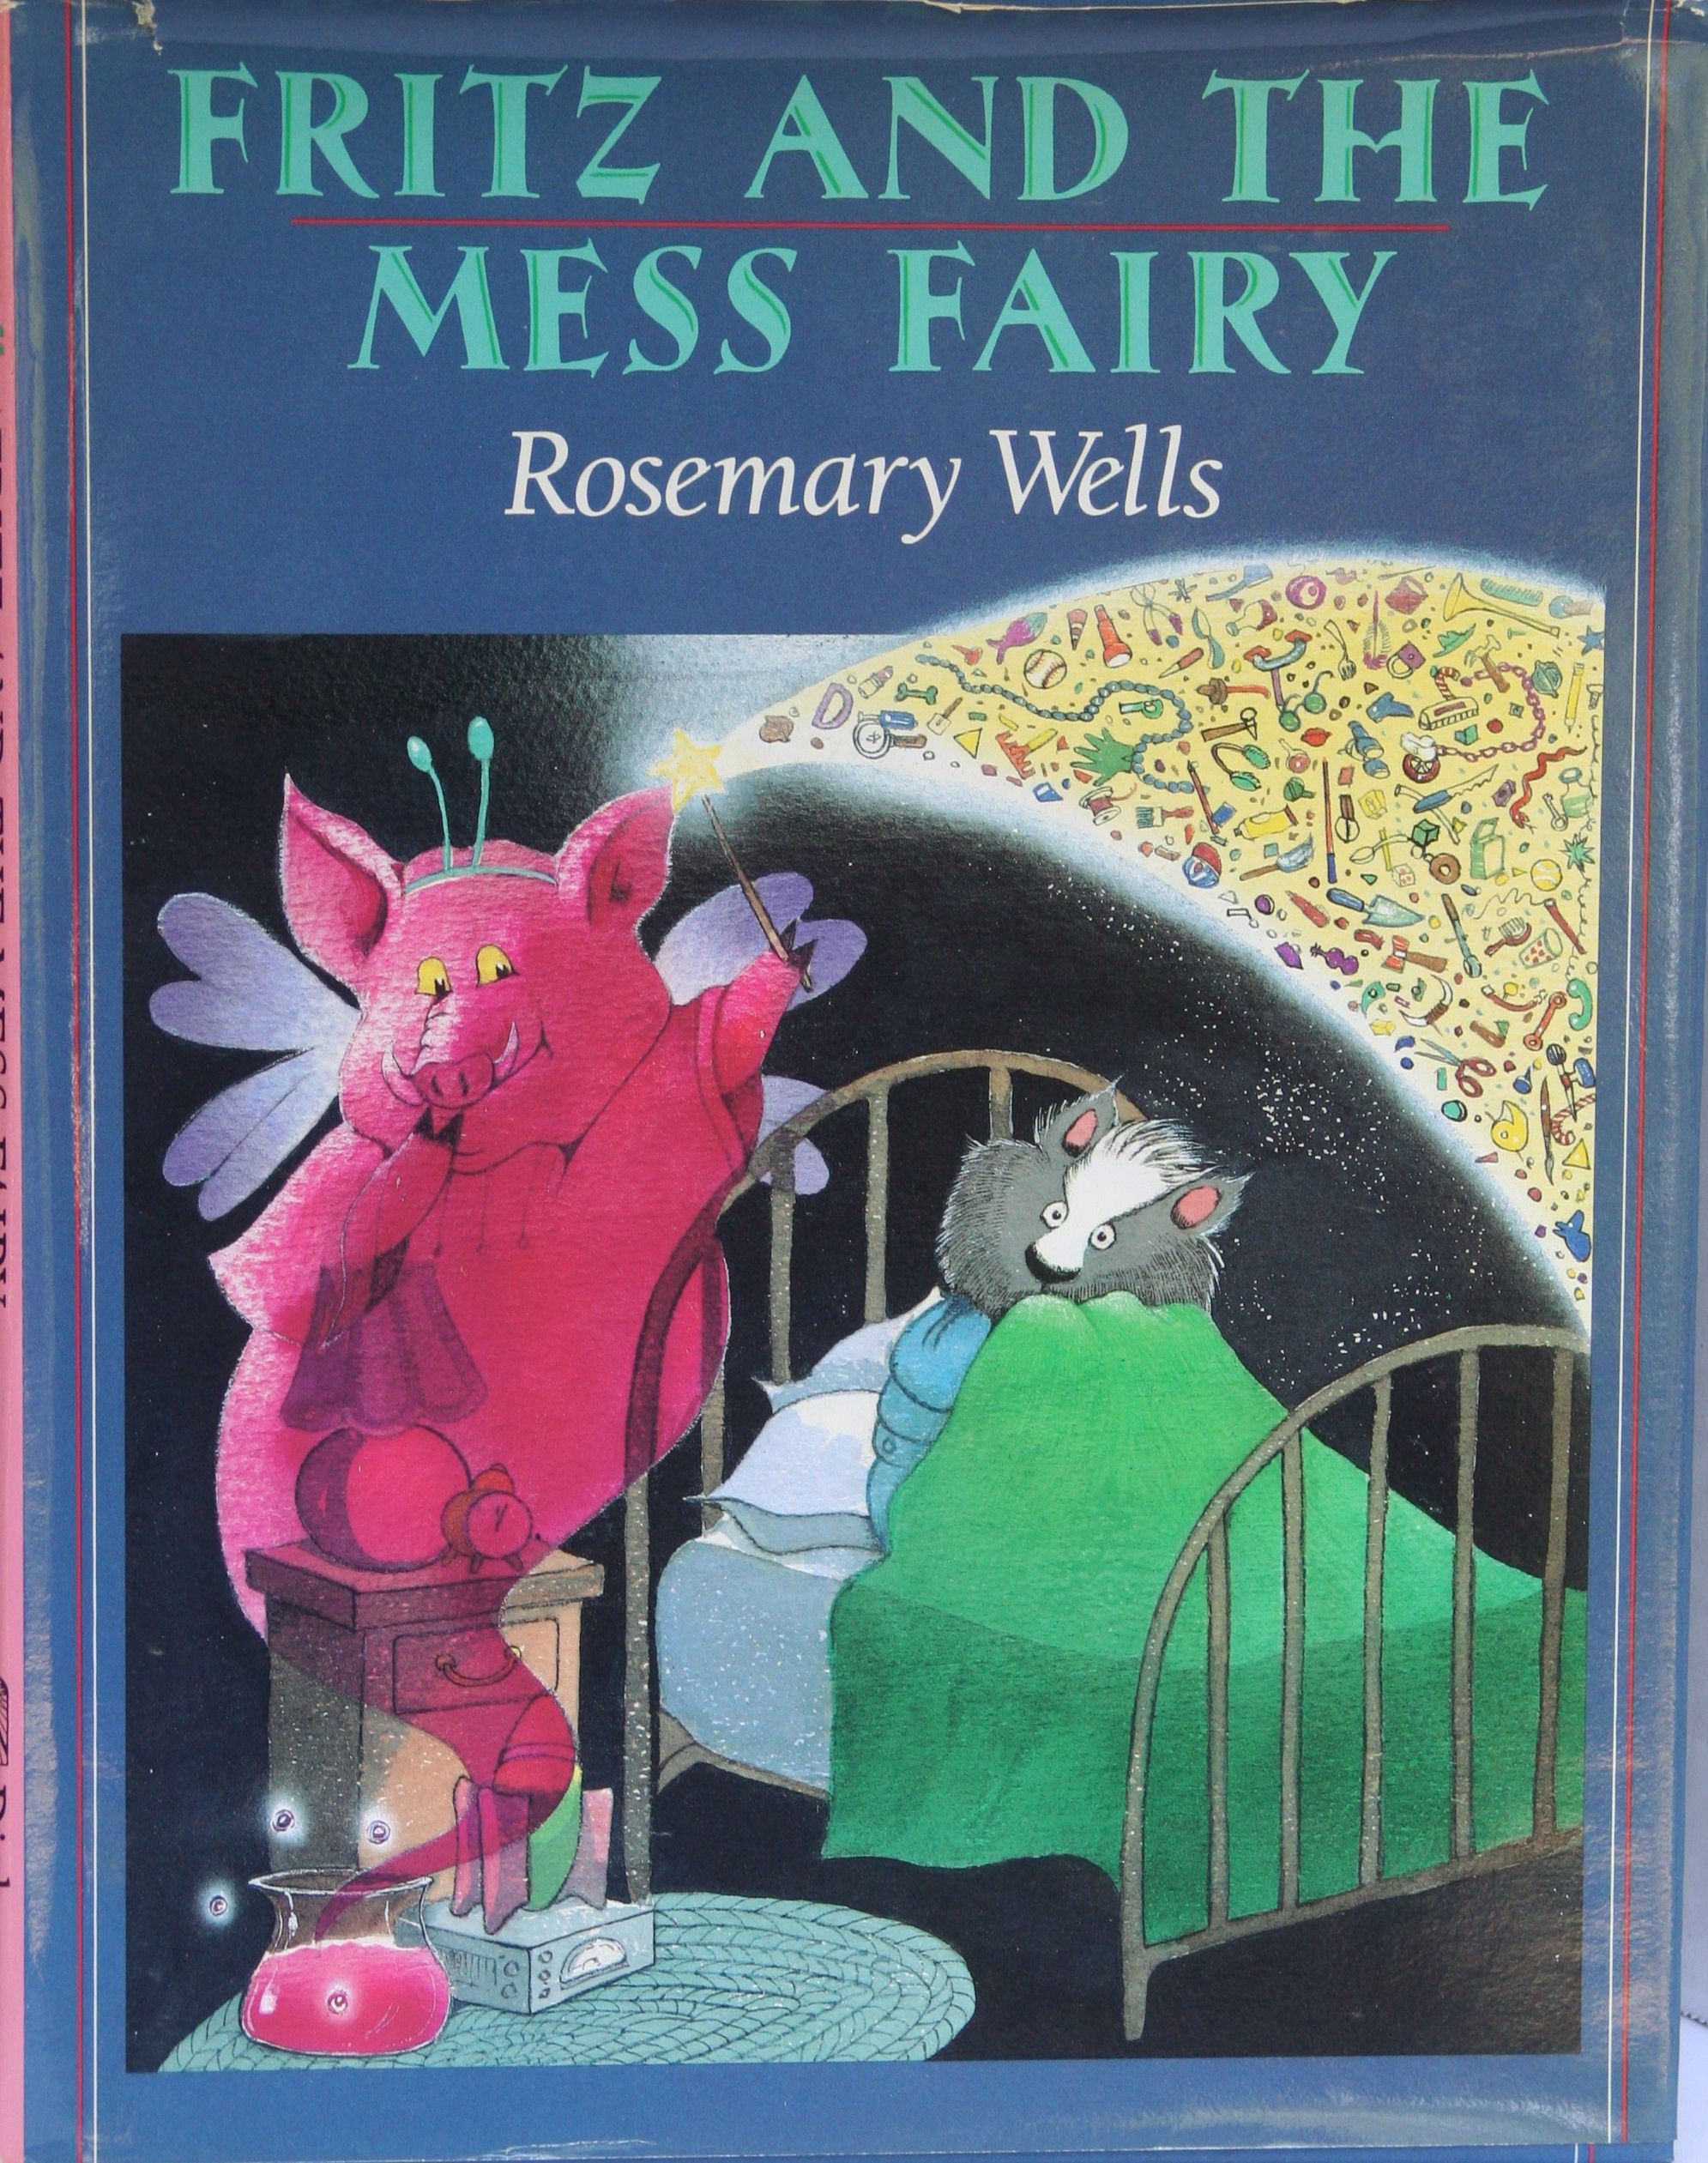 Fritz and the Mess Fairy, by Rosemary Wells